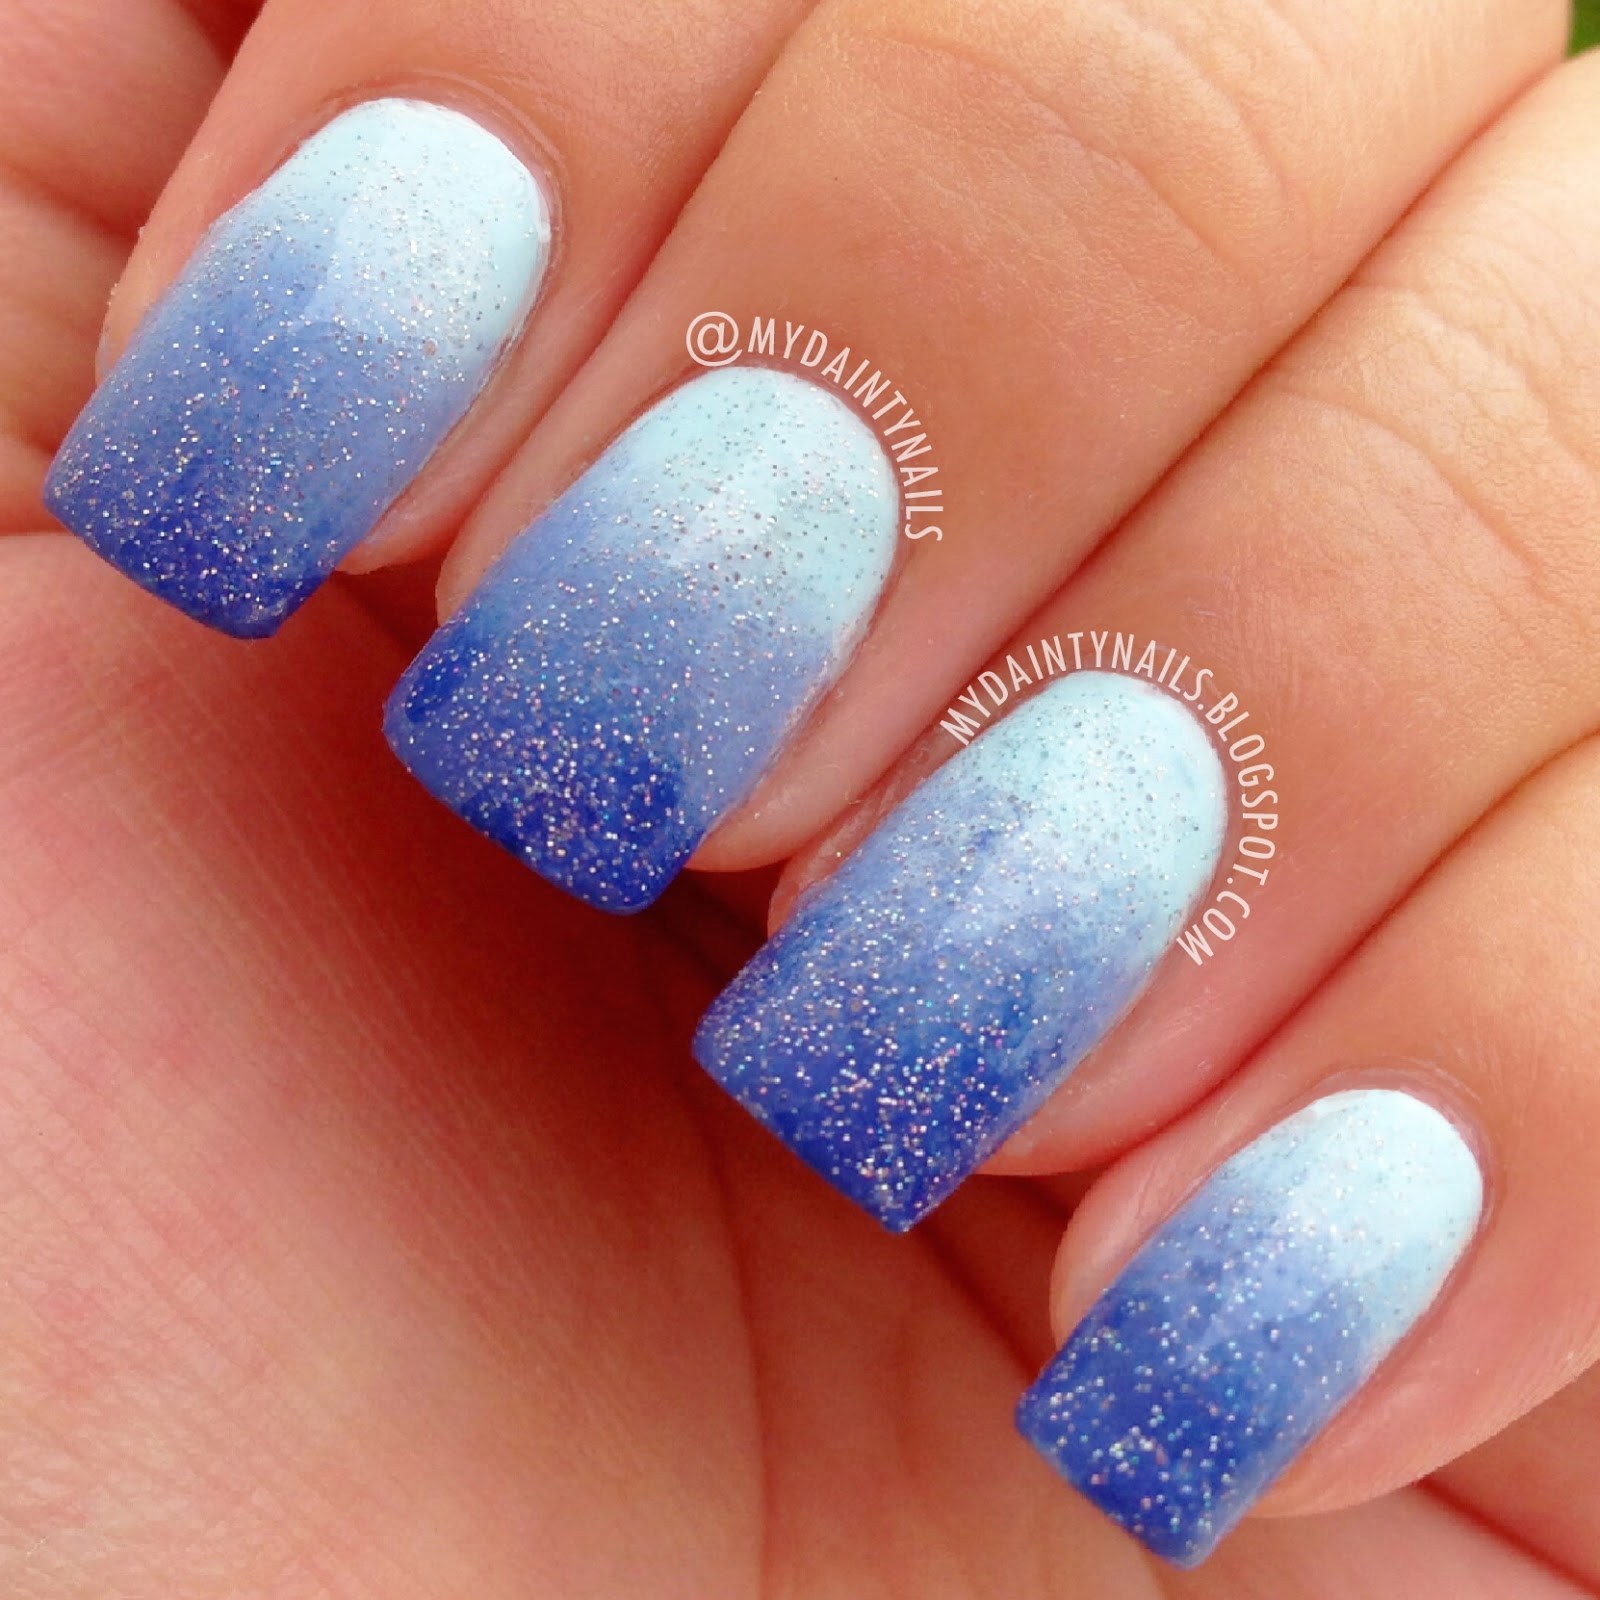 Prom nails for light blue dress